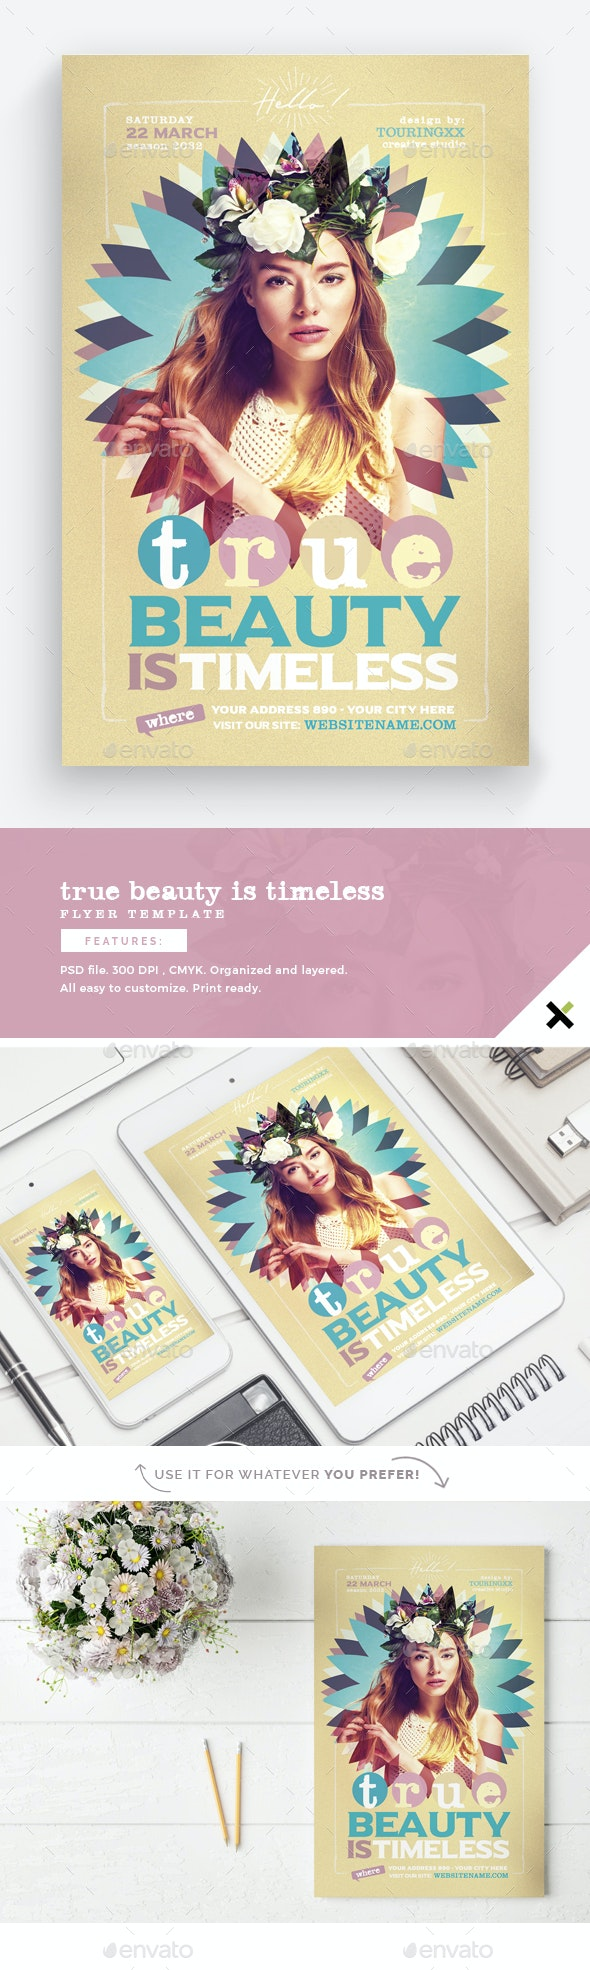 True Beauty Is Timeless Flyer Template - Events Flyers